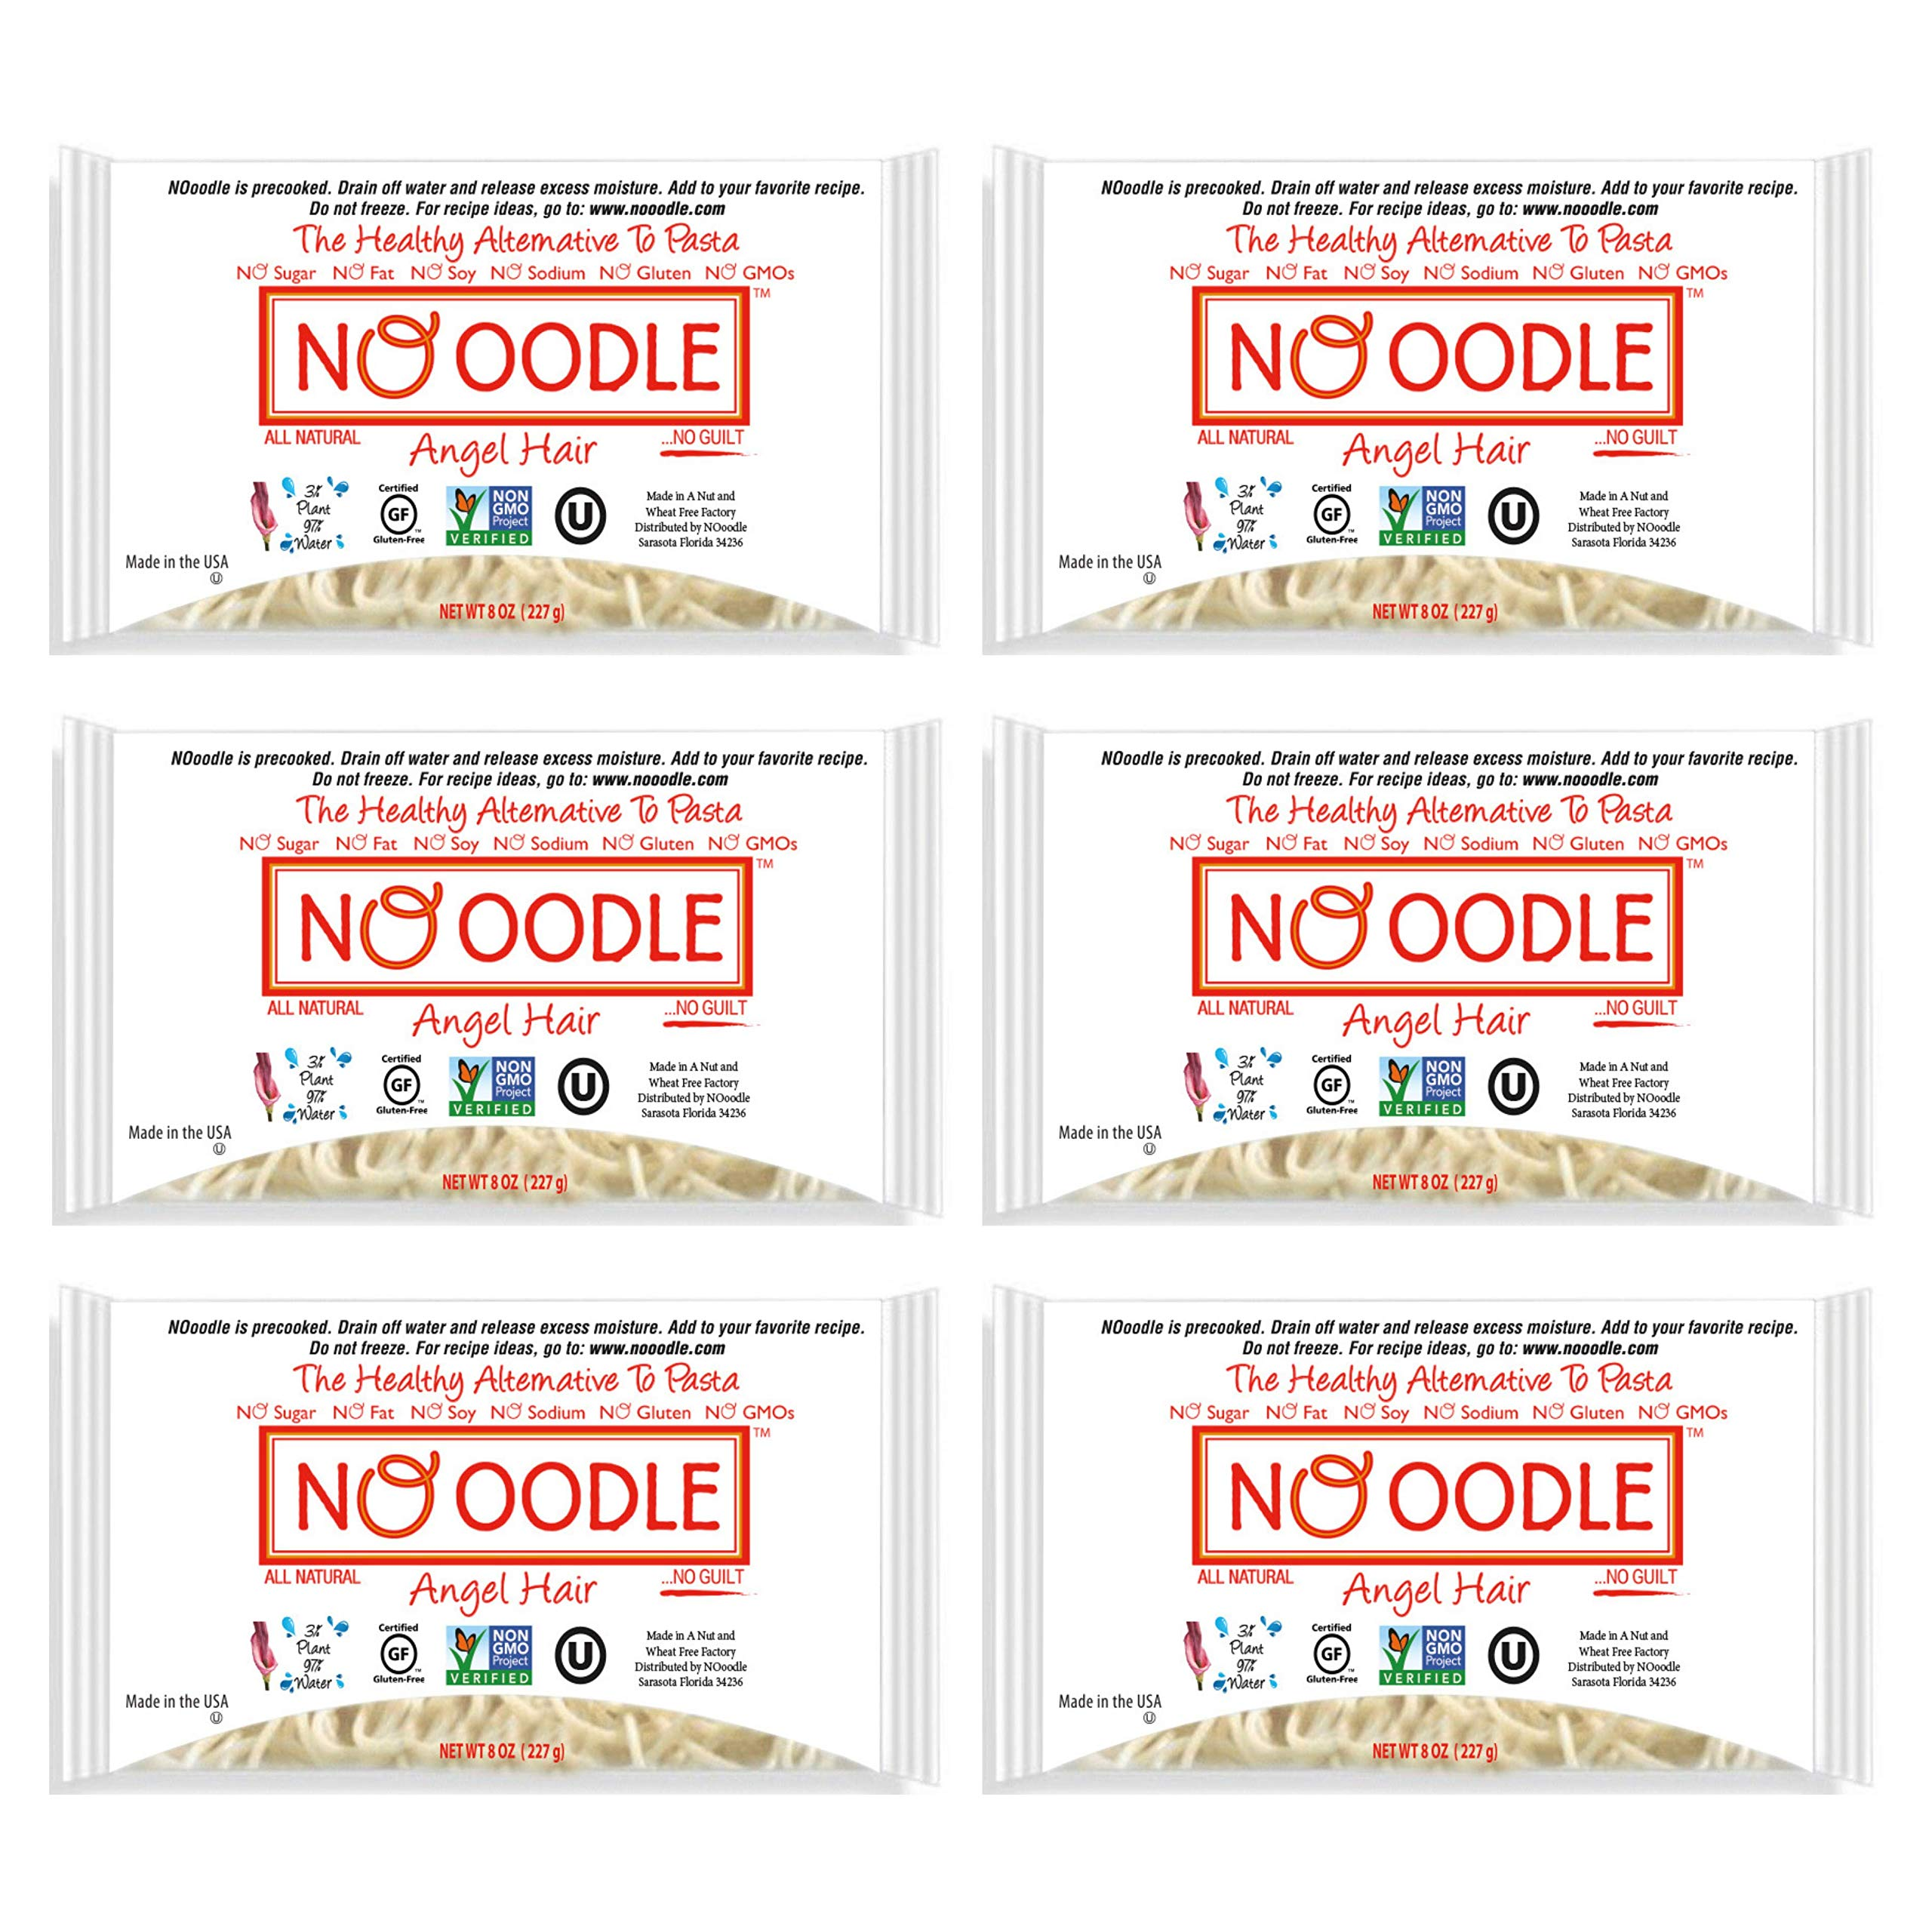 NOoodle No Carb Pasta, Noodle Alternative, Zero Calories, Gluten Free, Keto Friendly, Best Tasting Shirataki Noodles (Angel Hair, 6-pack) by NO OODLE